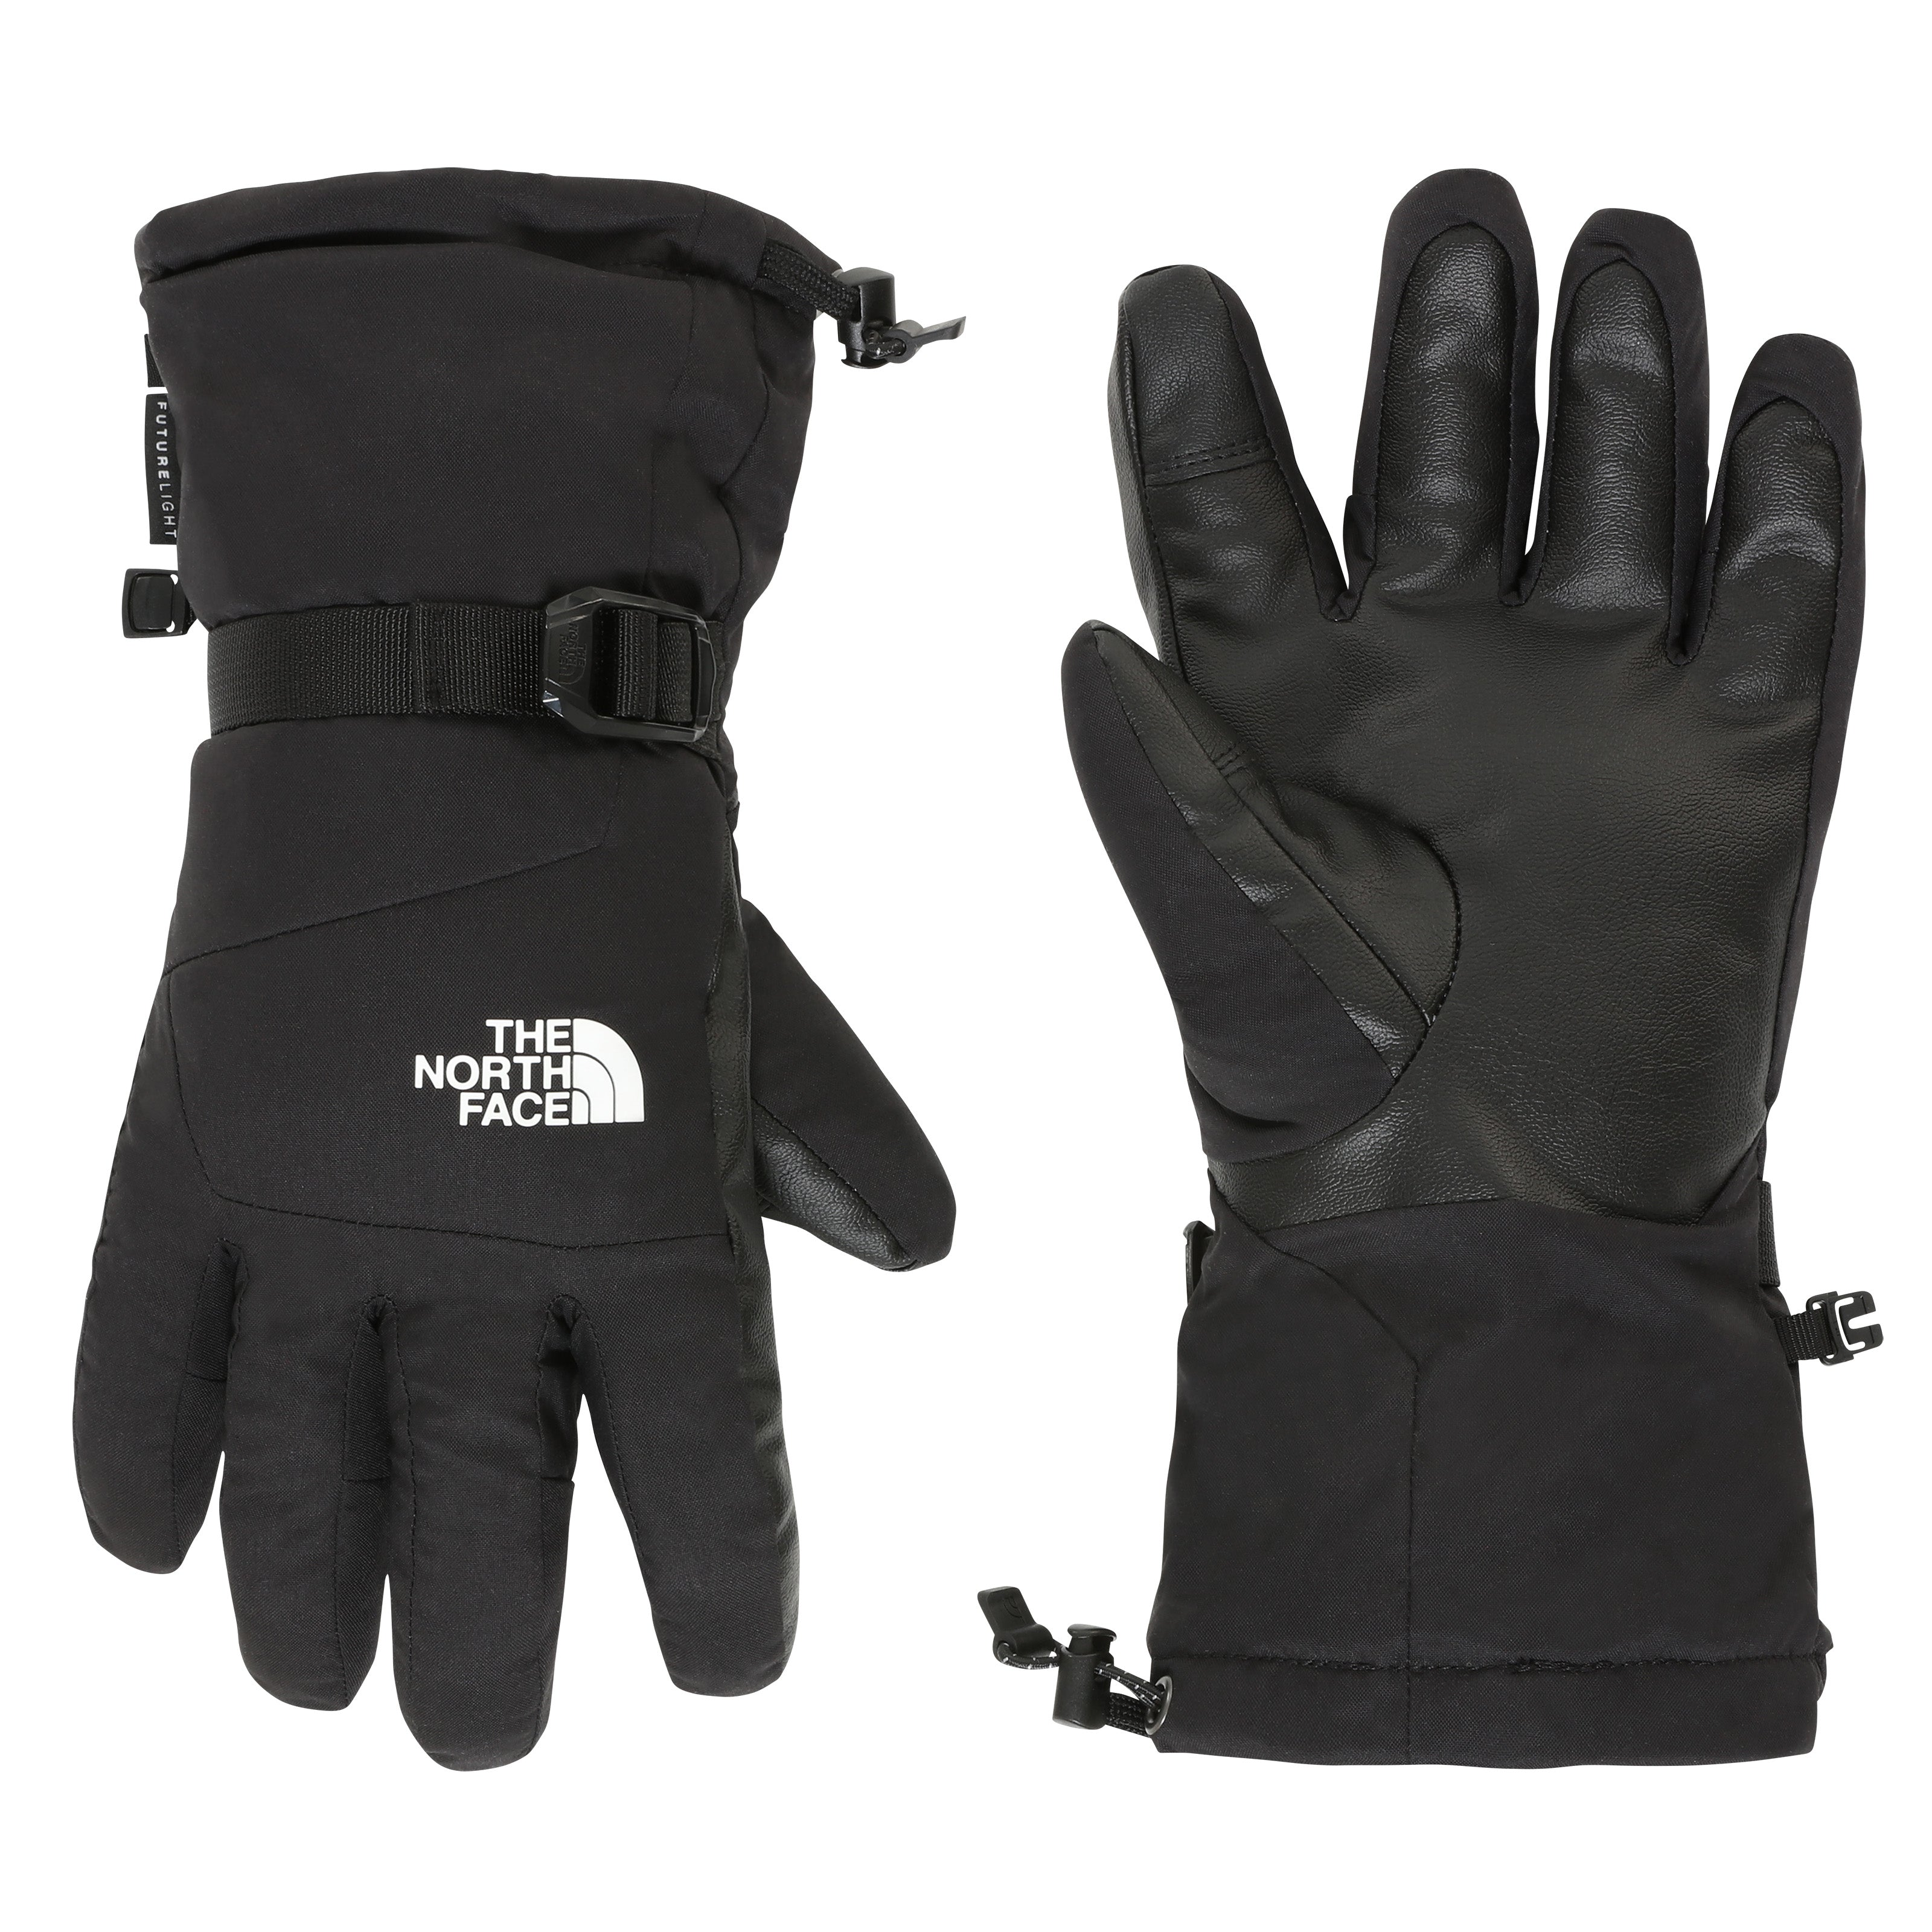 The North Face Montana futurelight Etip skihandske